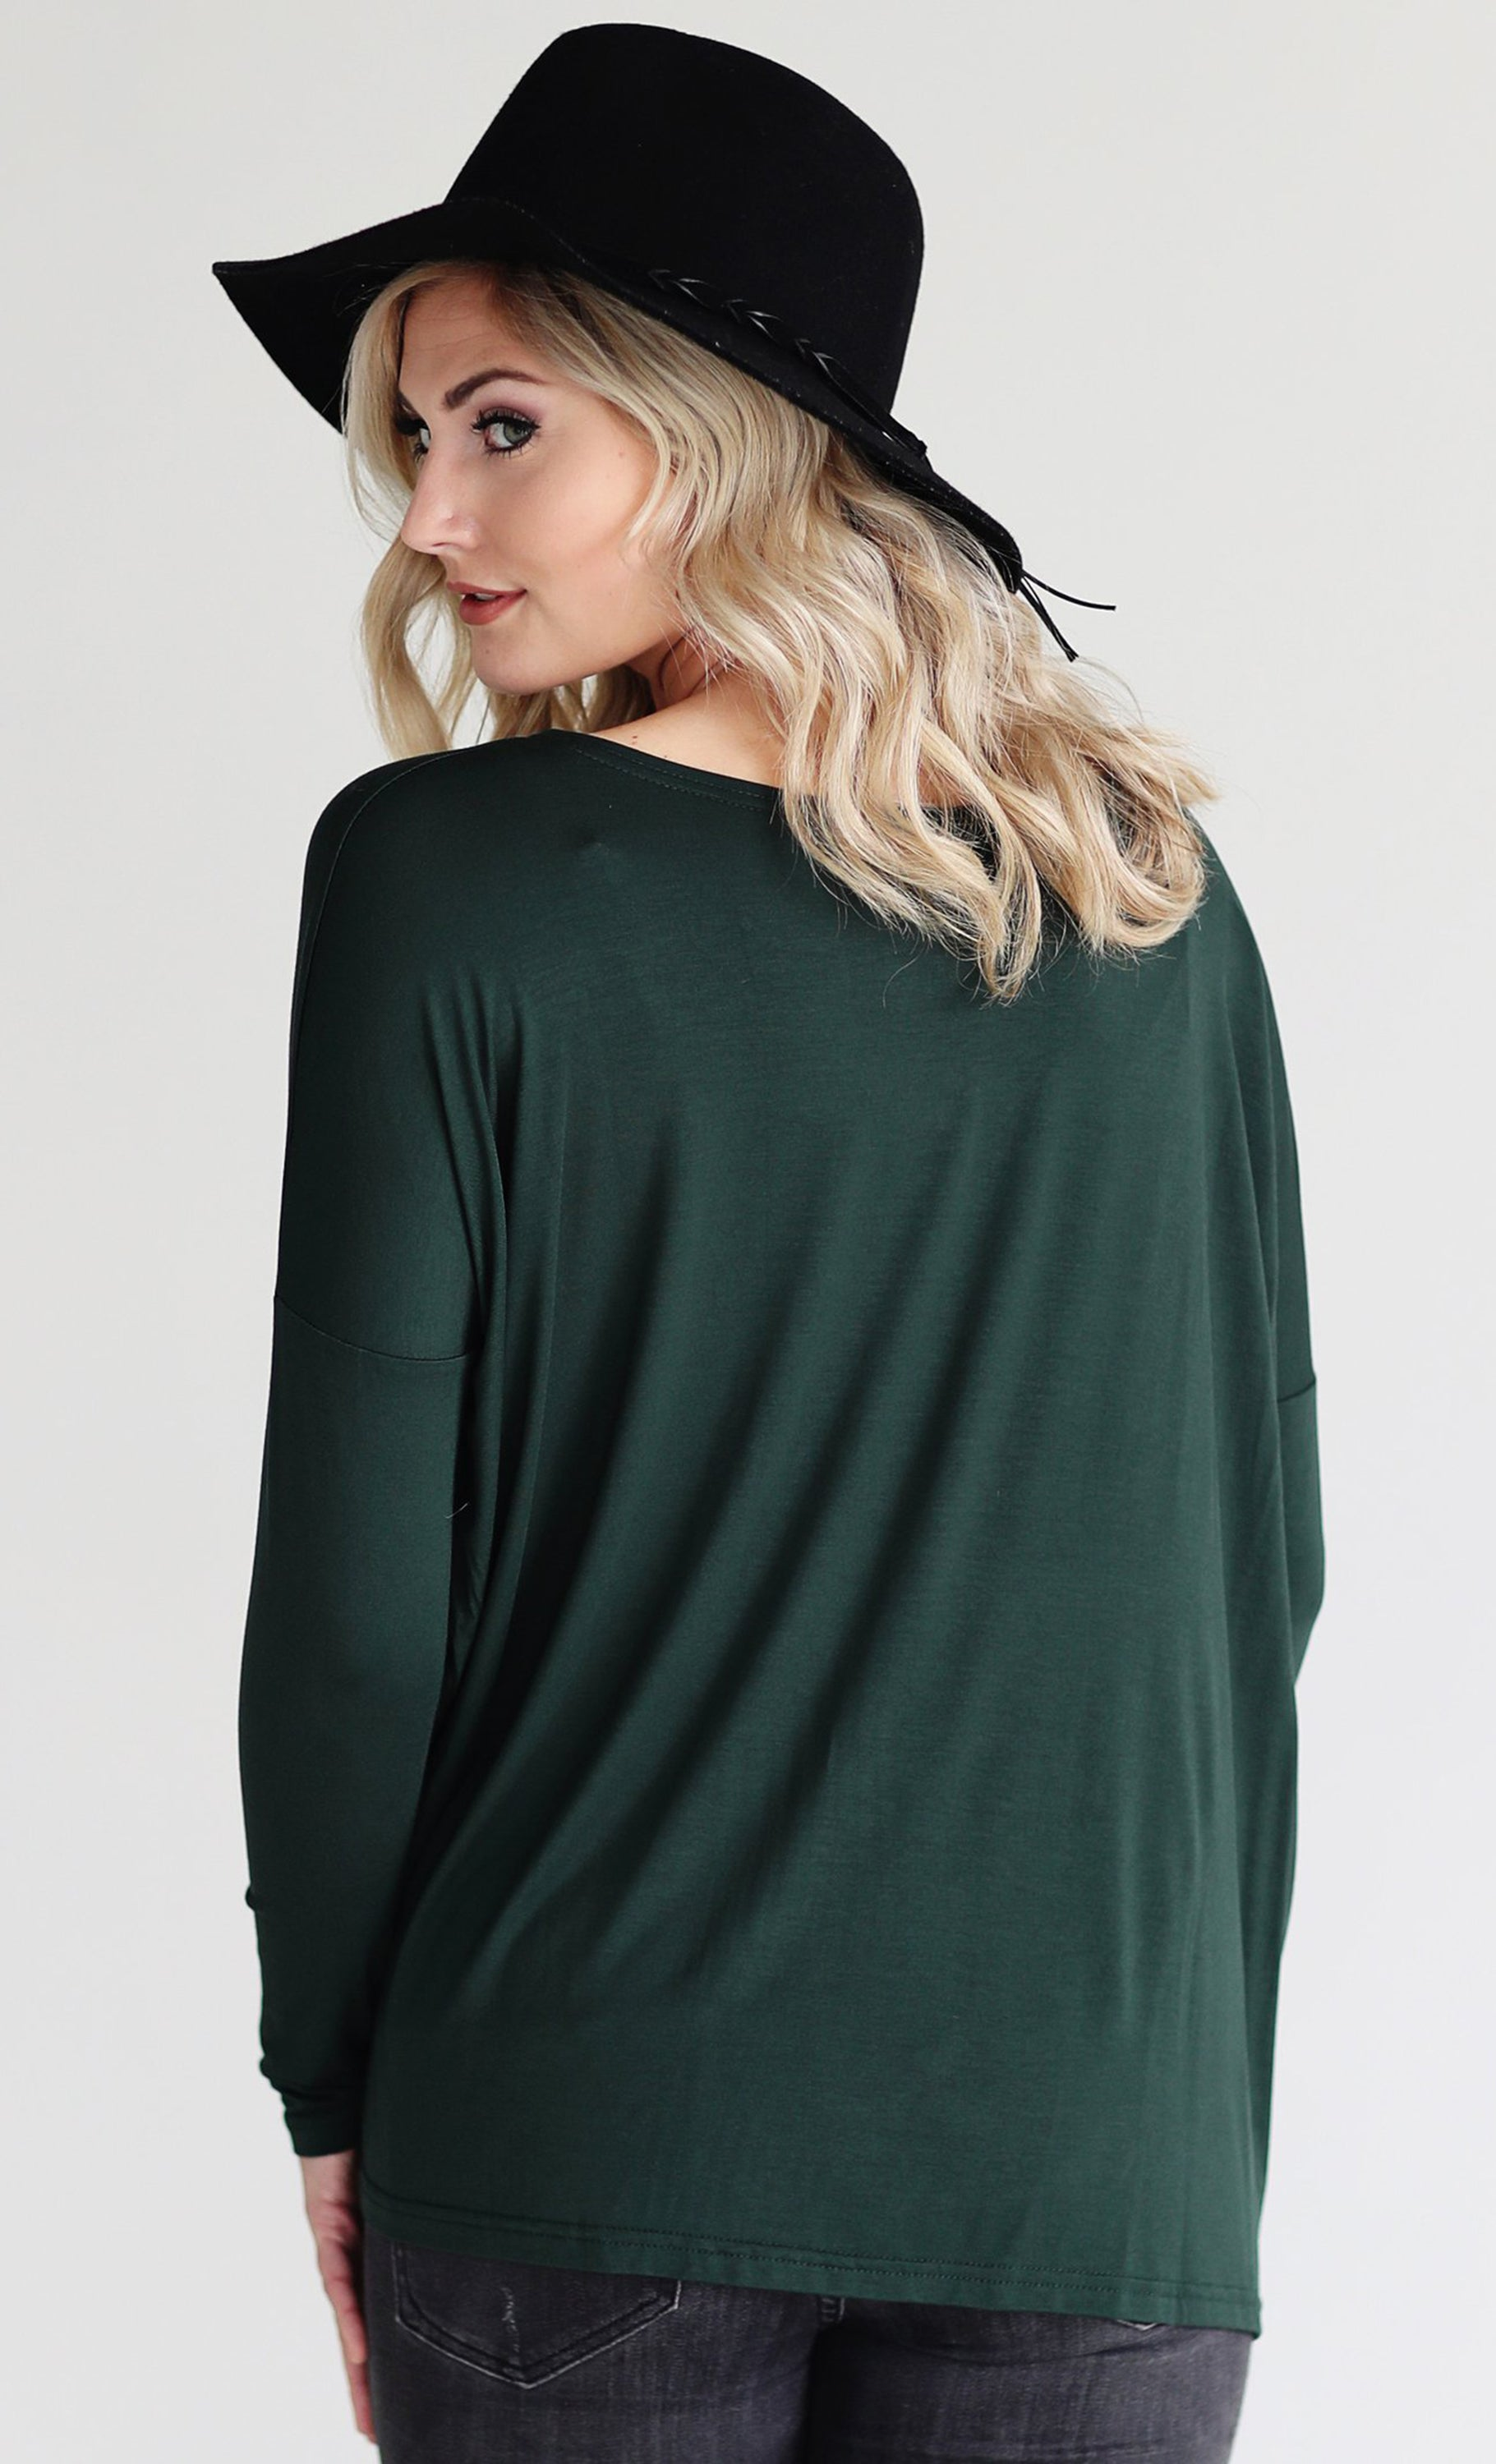 Basic Piko 1988 Forest Holiday Green Bamboo Piko Comfy Boat Neck Long Sleeve Slouchy Knit Tee Shirt Top